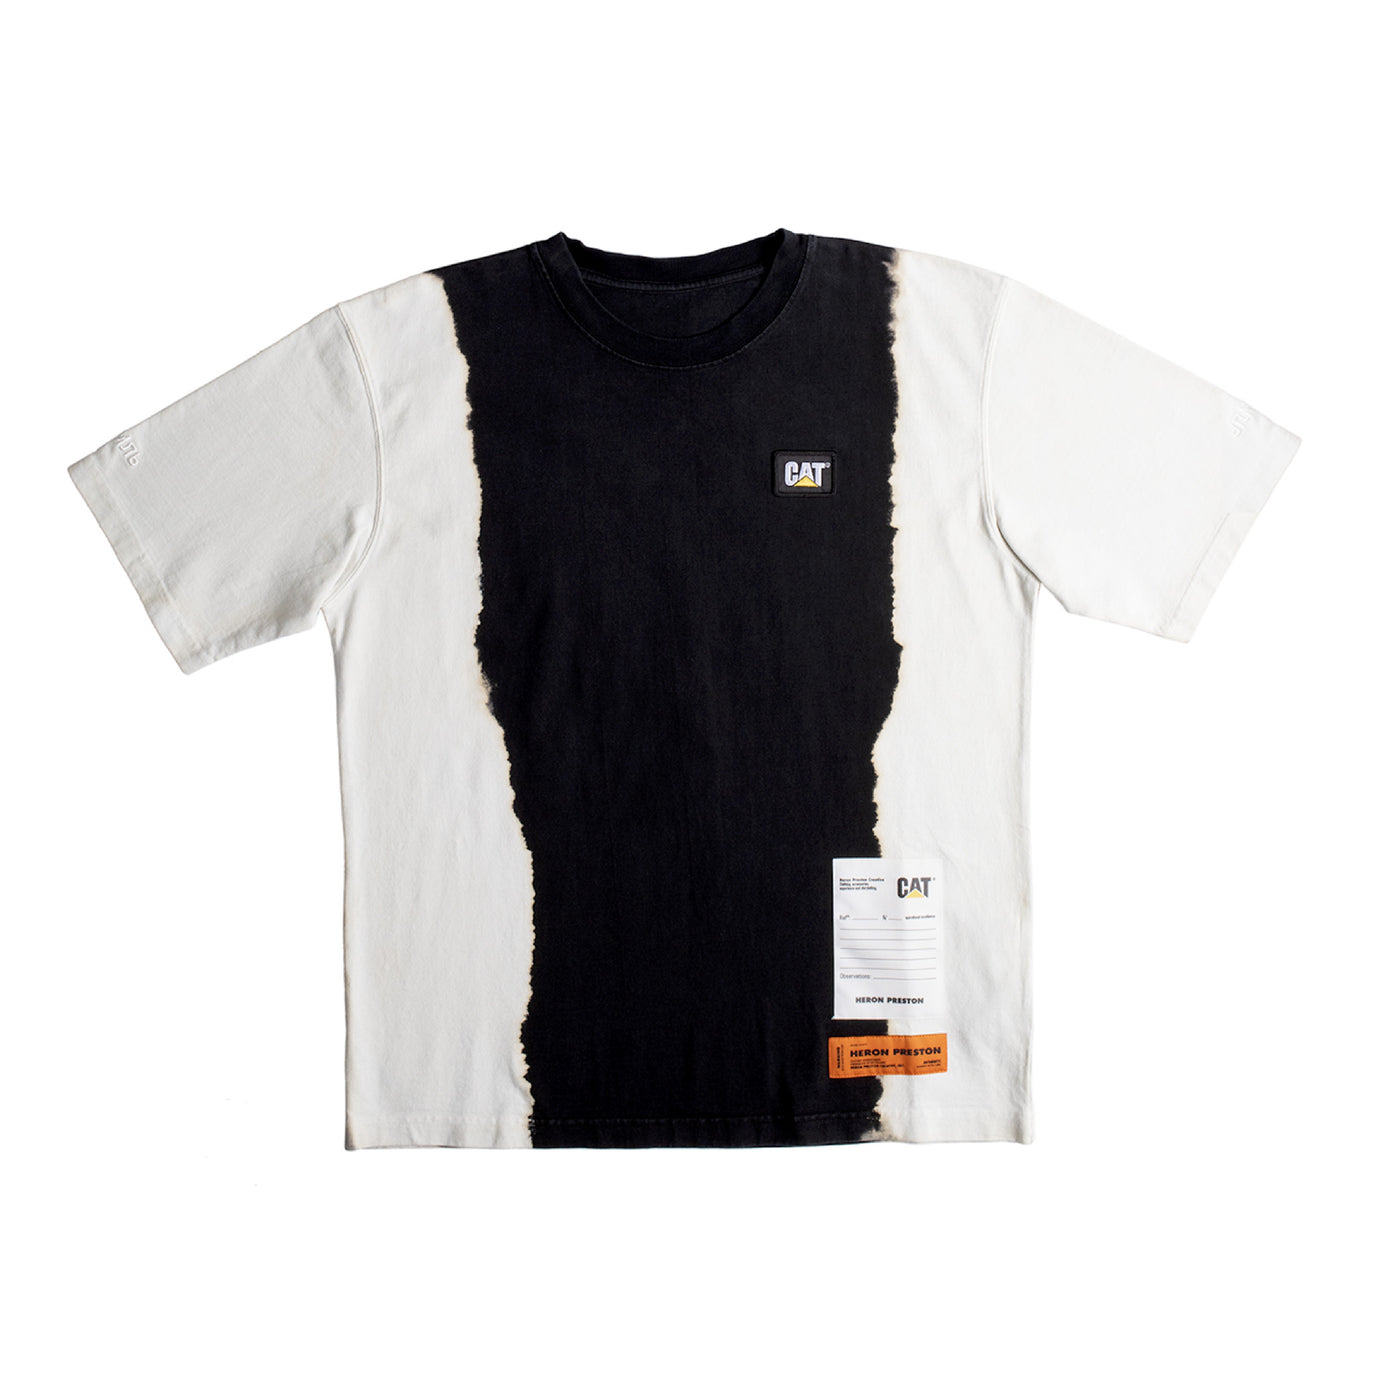 Load image into Gallery viewer, HERON PRESTON TIE-DYE T-SHIRT MULTI